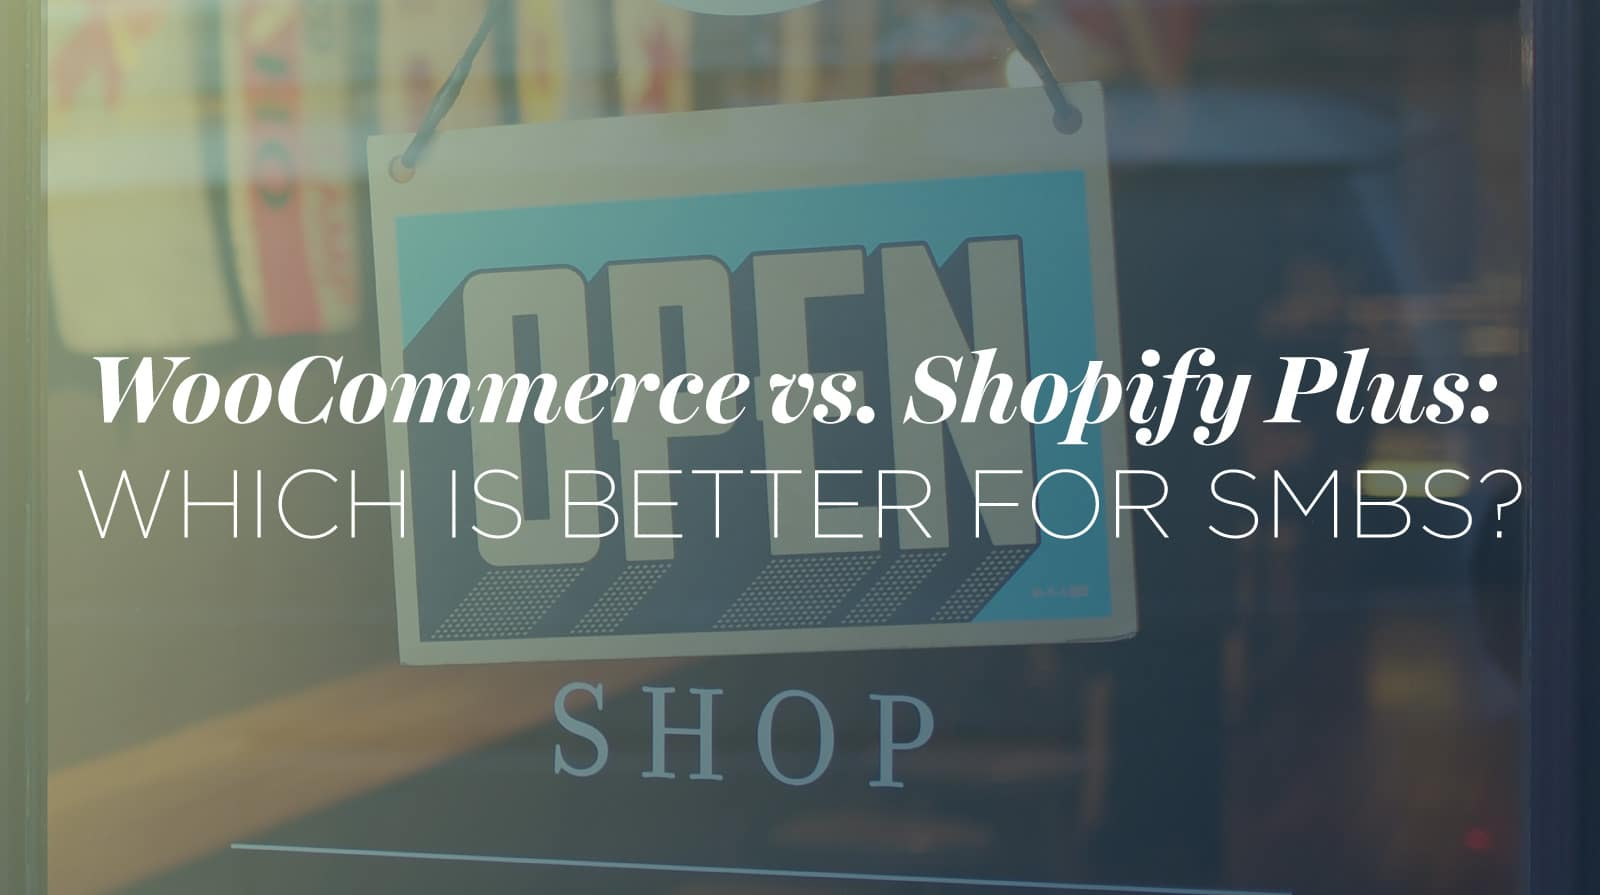 WooCommerce vs. Shopify Plus: Which is better for SMBs?